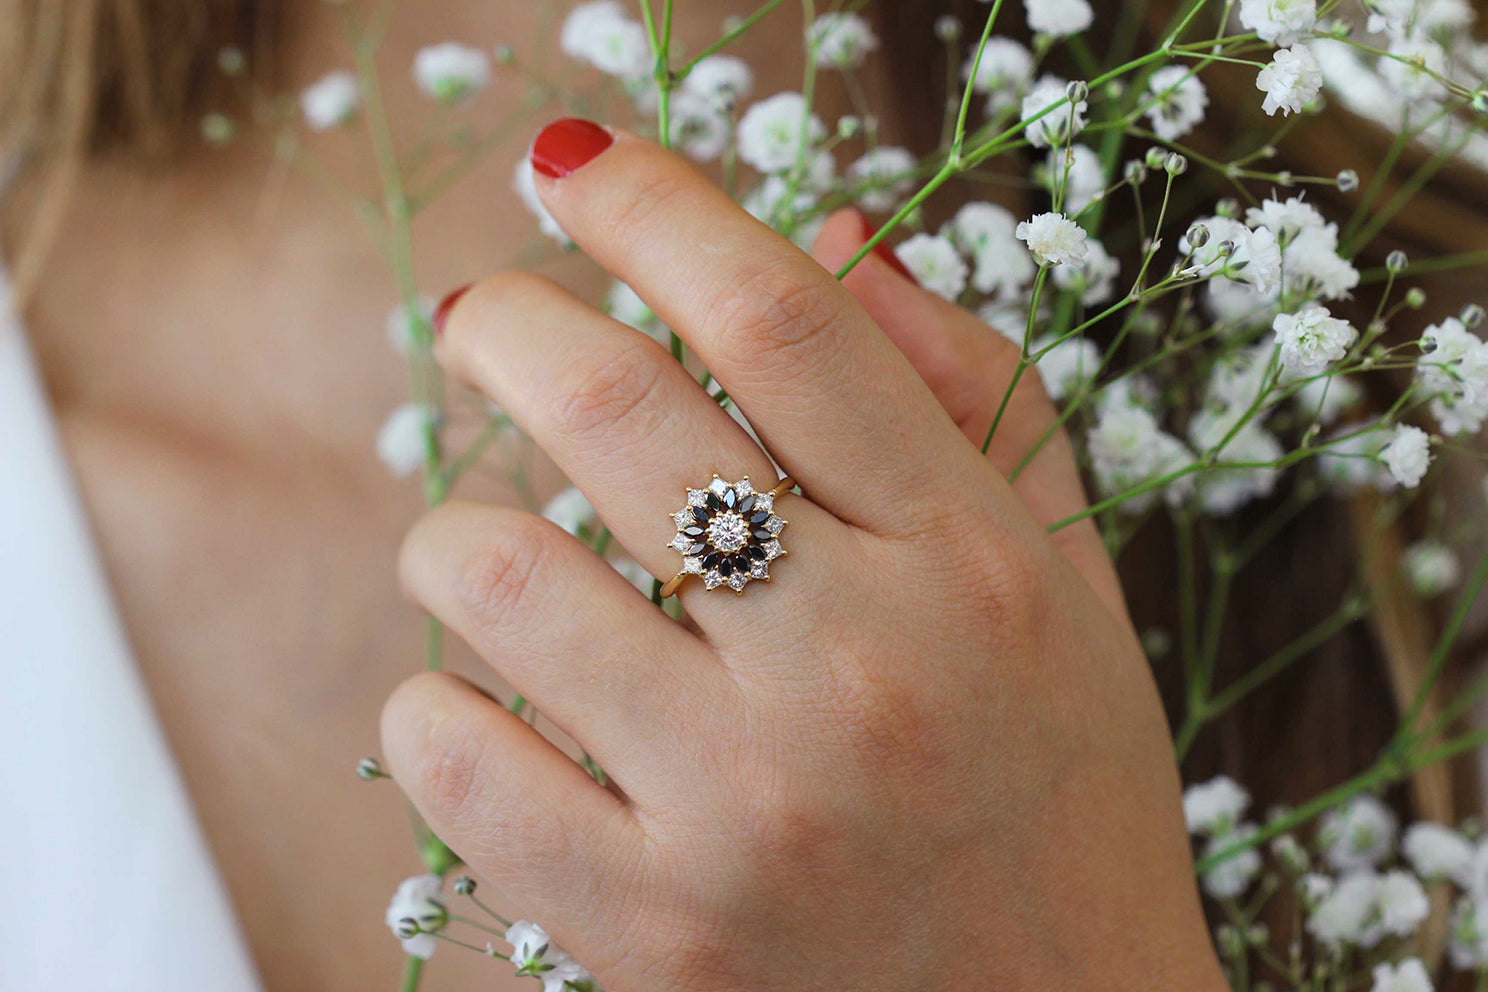 Black and White Diamond Engagement Ring - Flower Diamond Cluster Ring on Hand with White Flowers